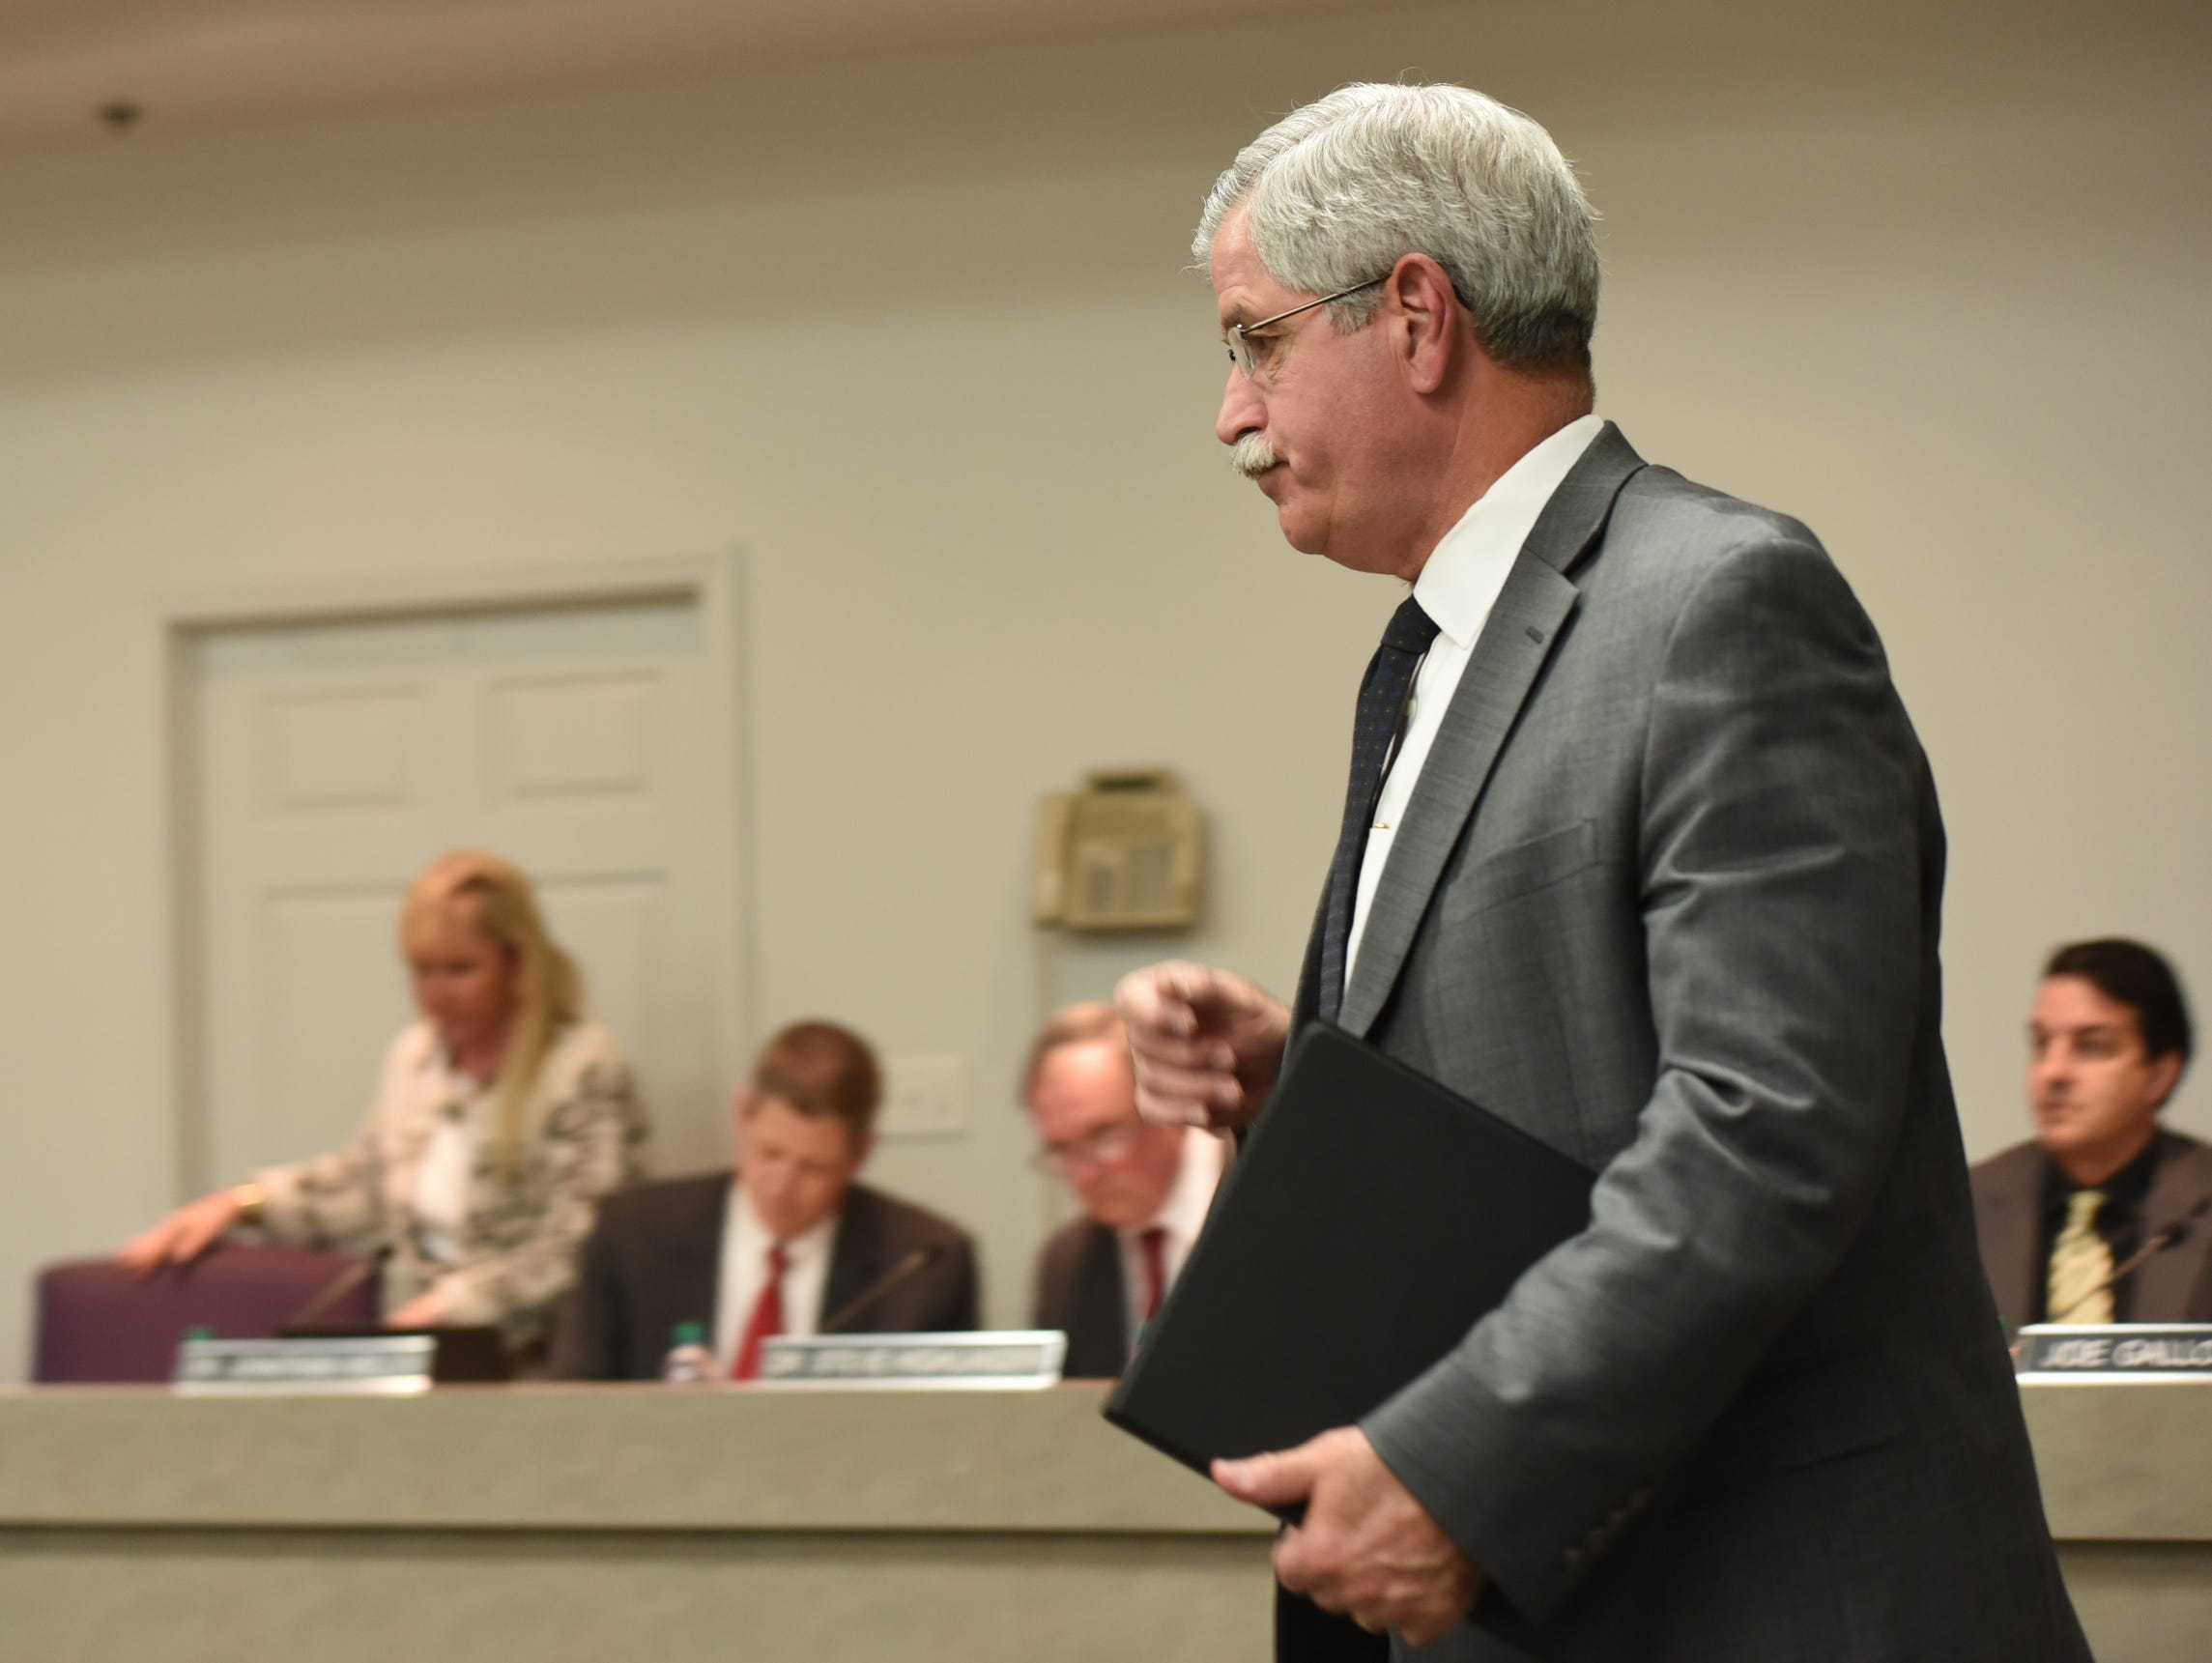 """Hamilton County Schools Superintendent Rick Smith enters a school board meeting room before a short public meeting in Chattanooga, Tenn., Wednesday, Jan. 6, 2016. Tennessee's Ooltewah High School has called off the rest of its basketball season after three of its players were arrested on charges of raping a teammate in an apparent hazing incident. Smith said he was taking this """"very unusual step"""" with the high school """"so that the criminal justice system can work the way we expect."""""""